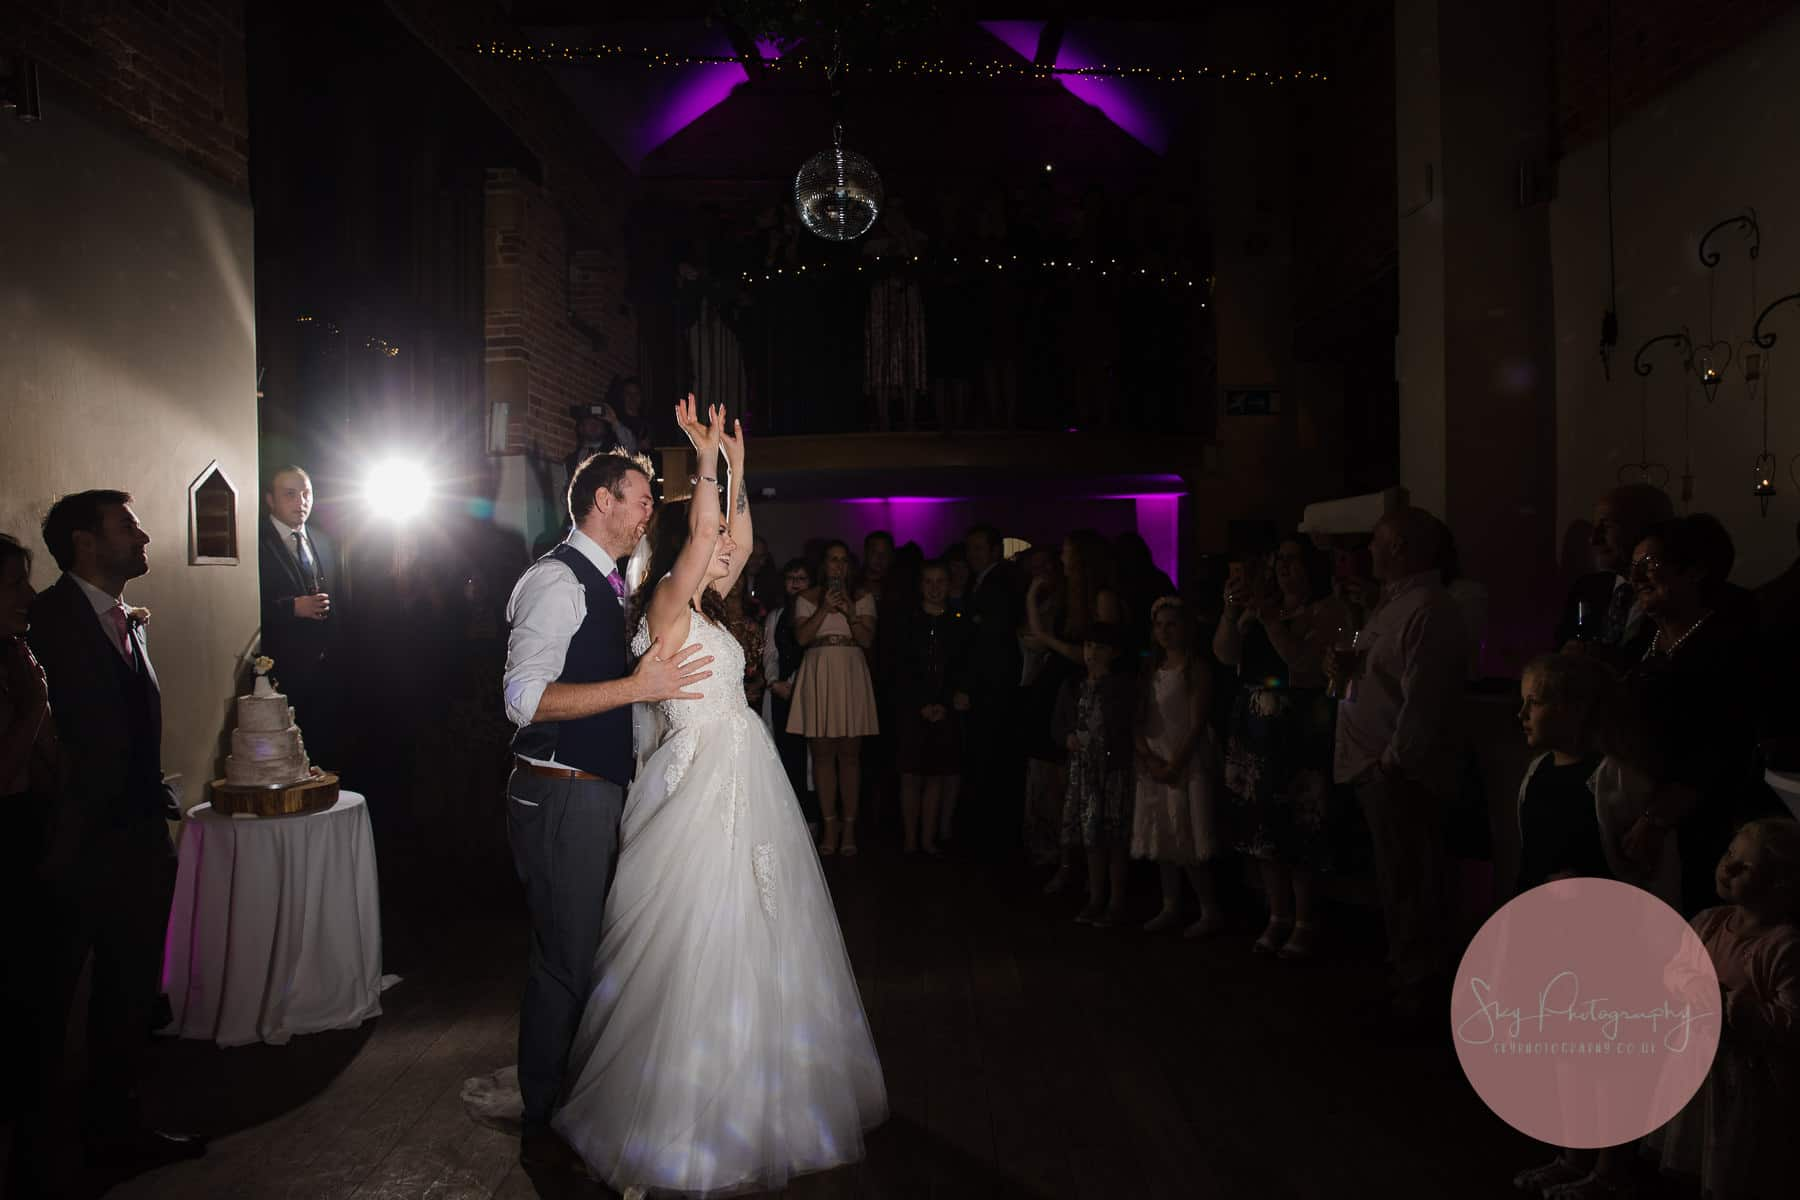 best first dance routine ever being performed by Bride and Groom